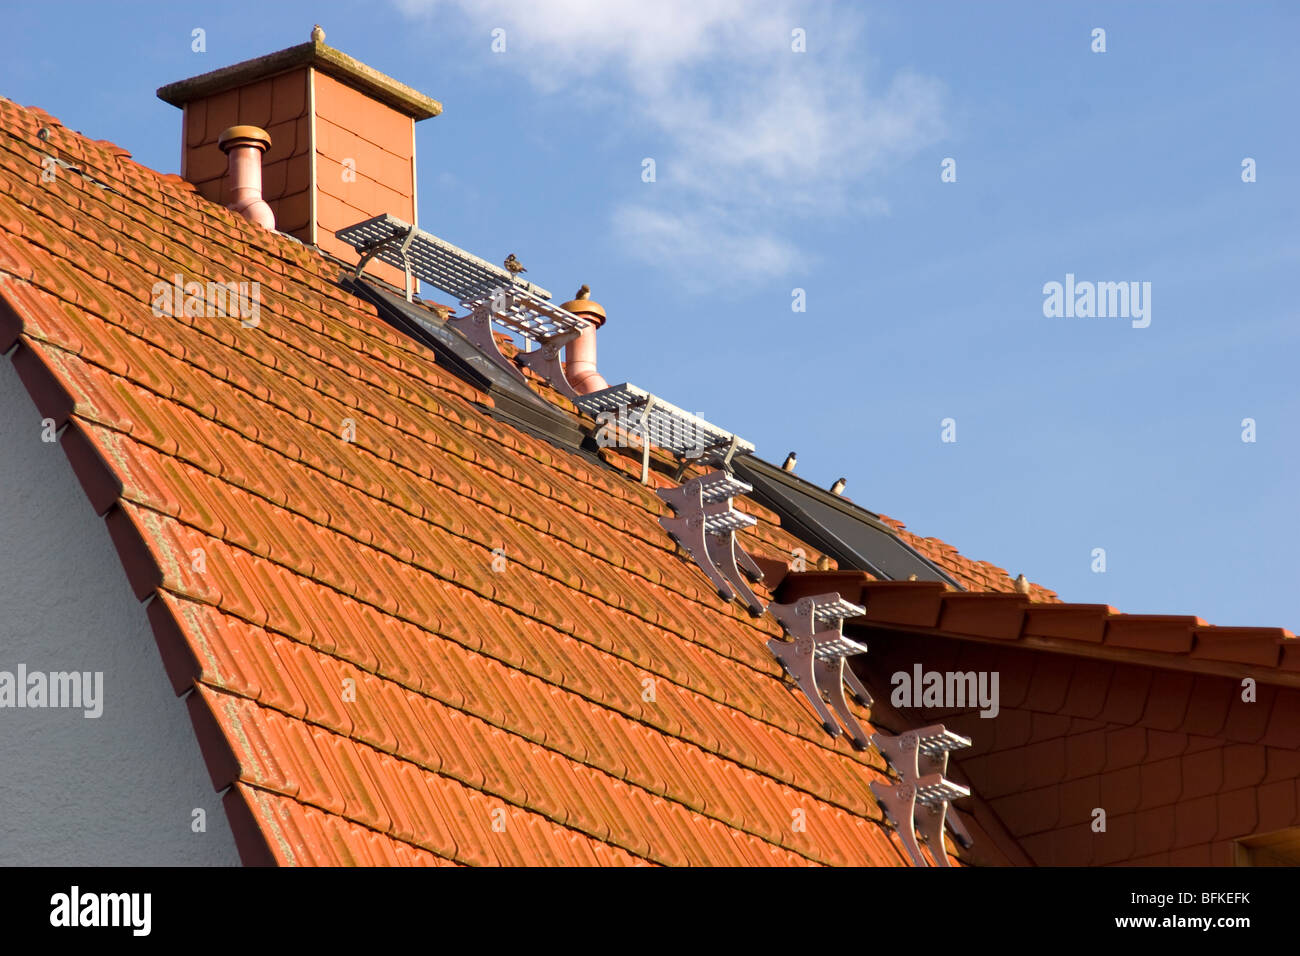 House roof in North Germany showing permanent roof steps for chimney sweep - Stock Image